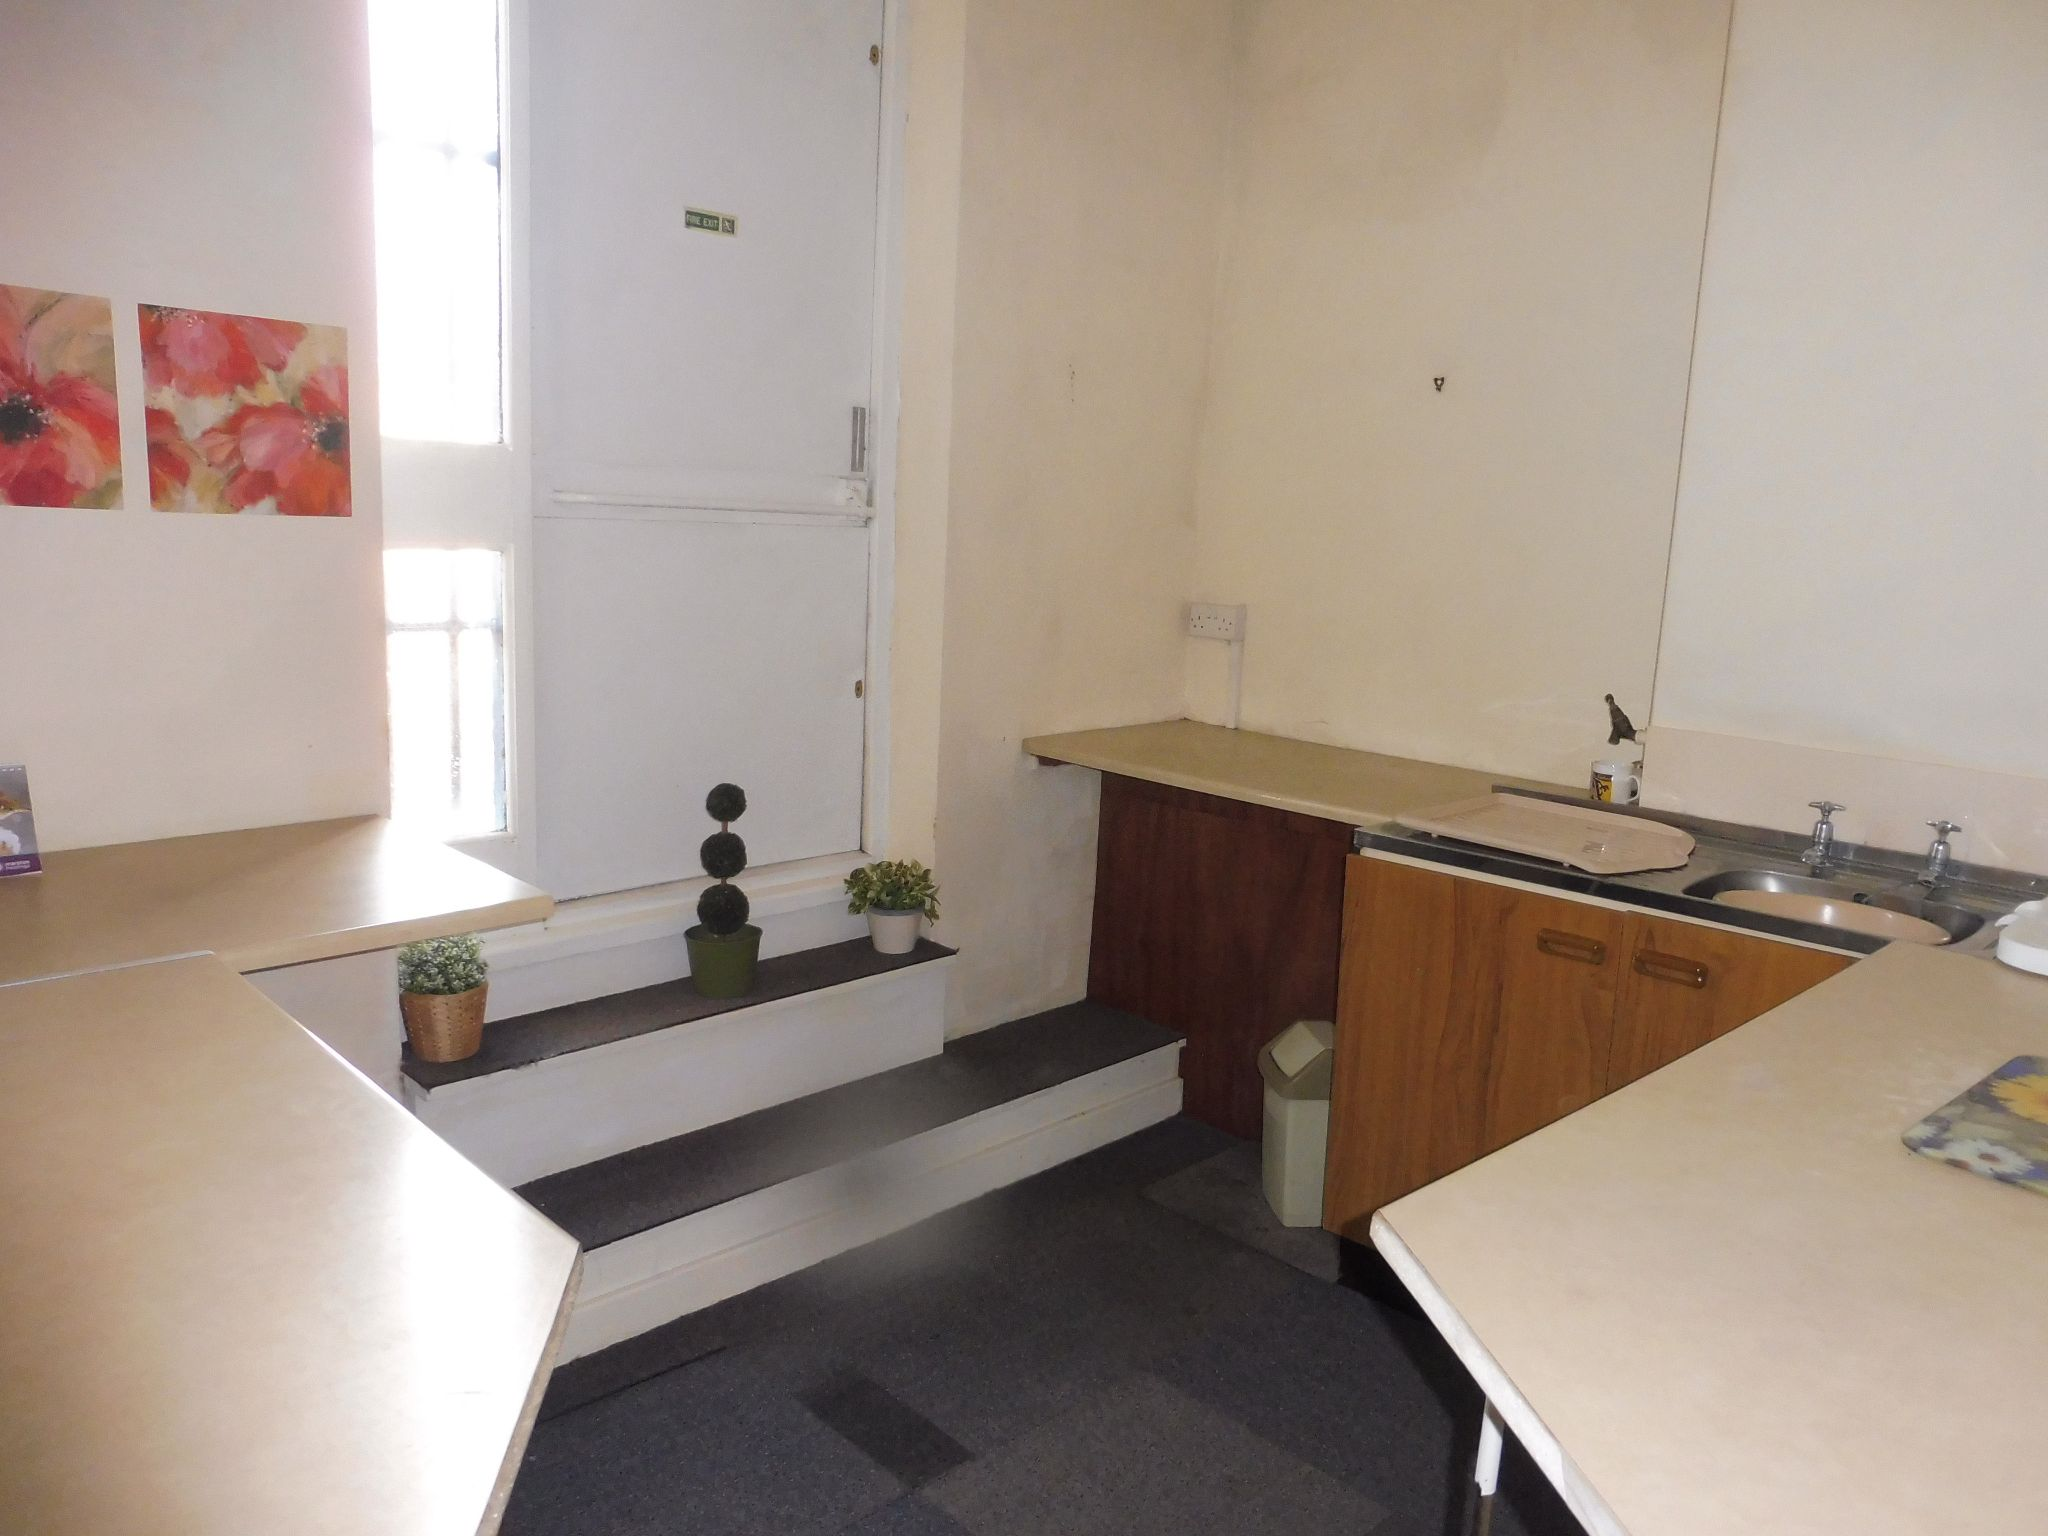 Commercial Property To Let in Brighouse - Photograph 5.